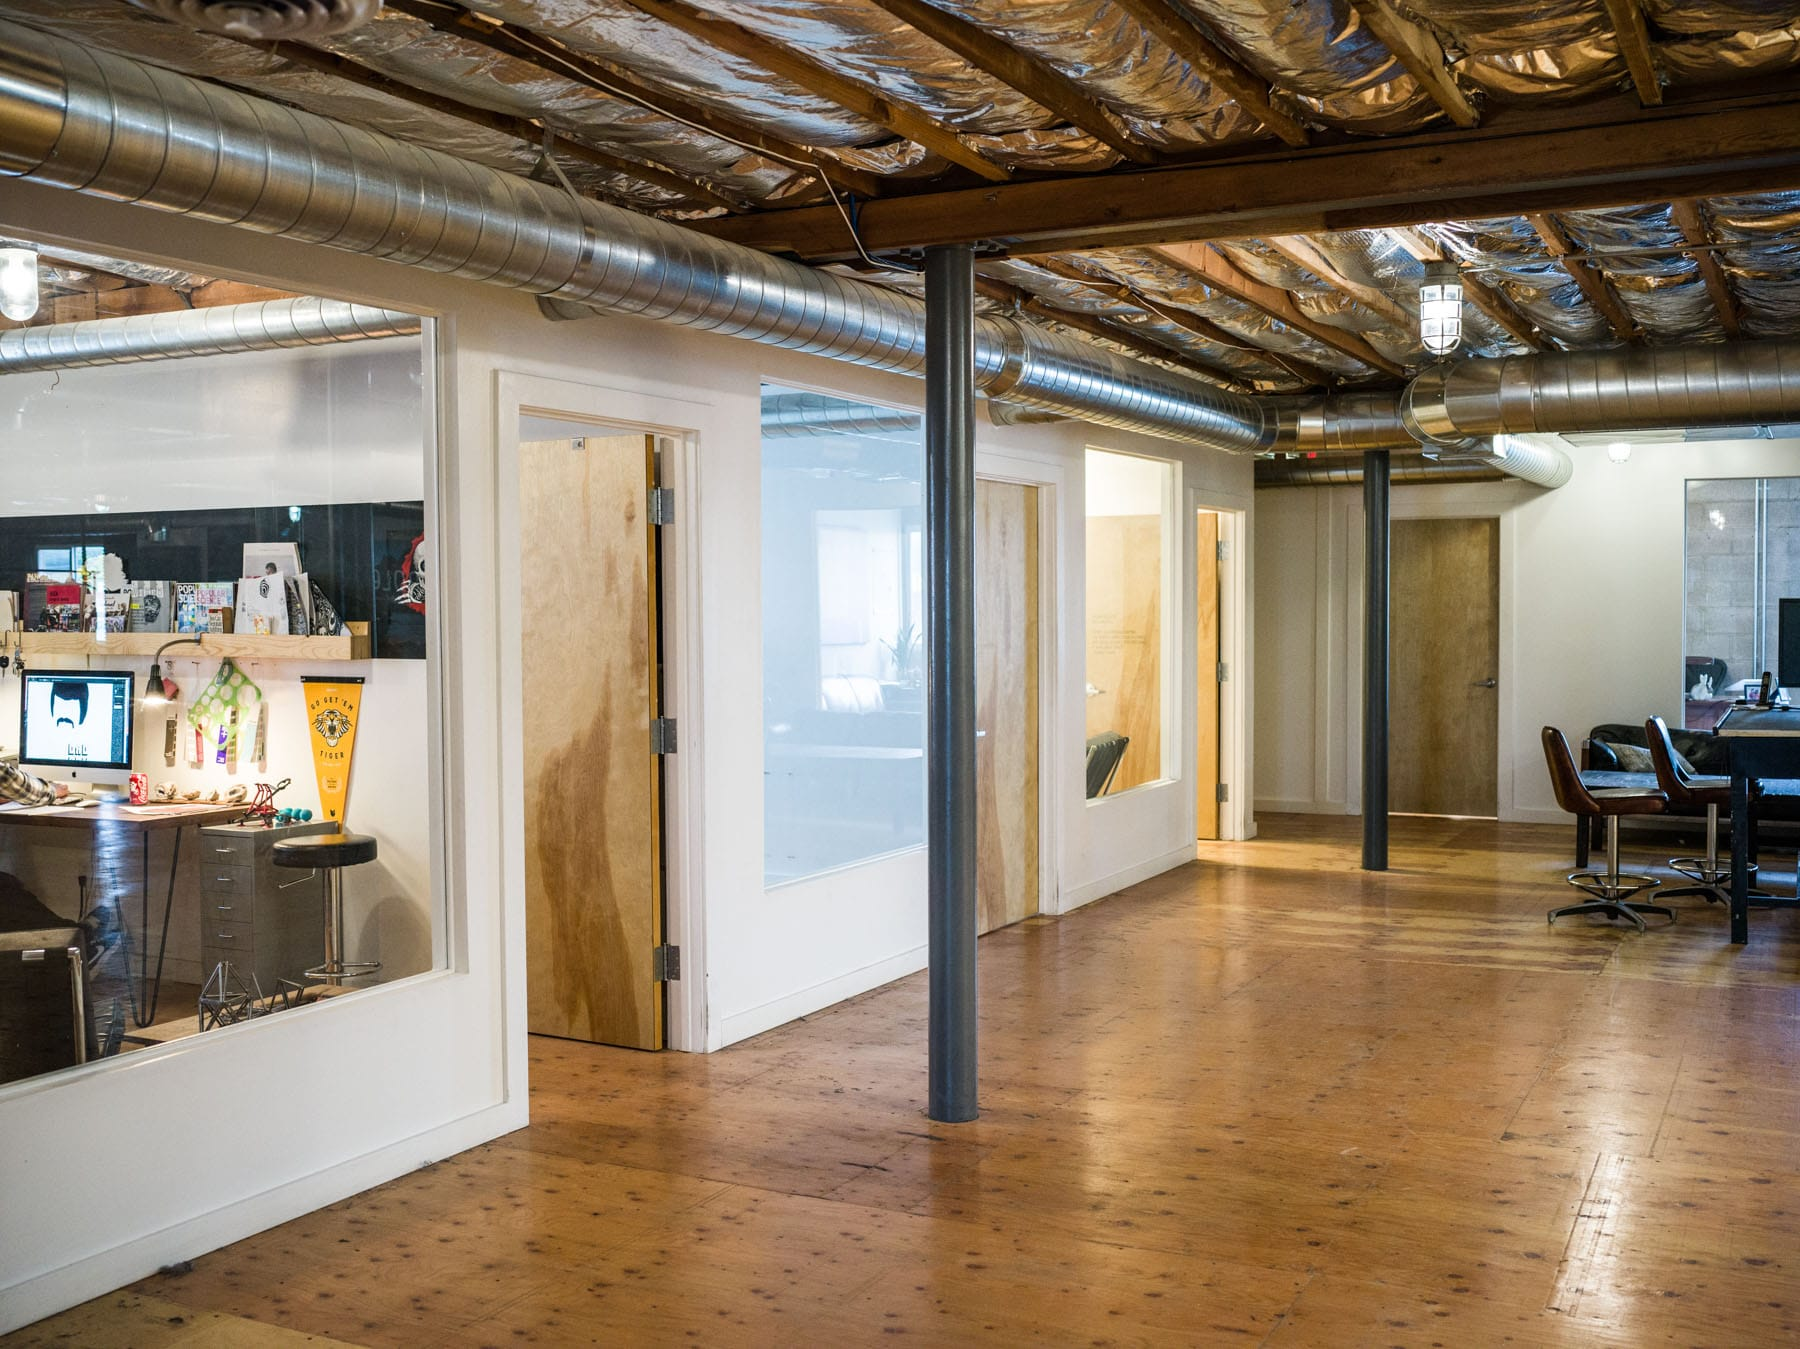 Windermere-Commercial-Real-Estate-Utah-Hip-Industrial-Creative-Office-Space6